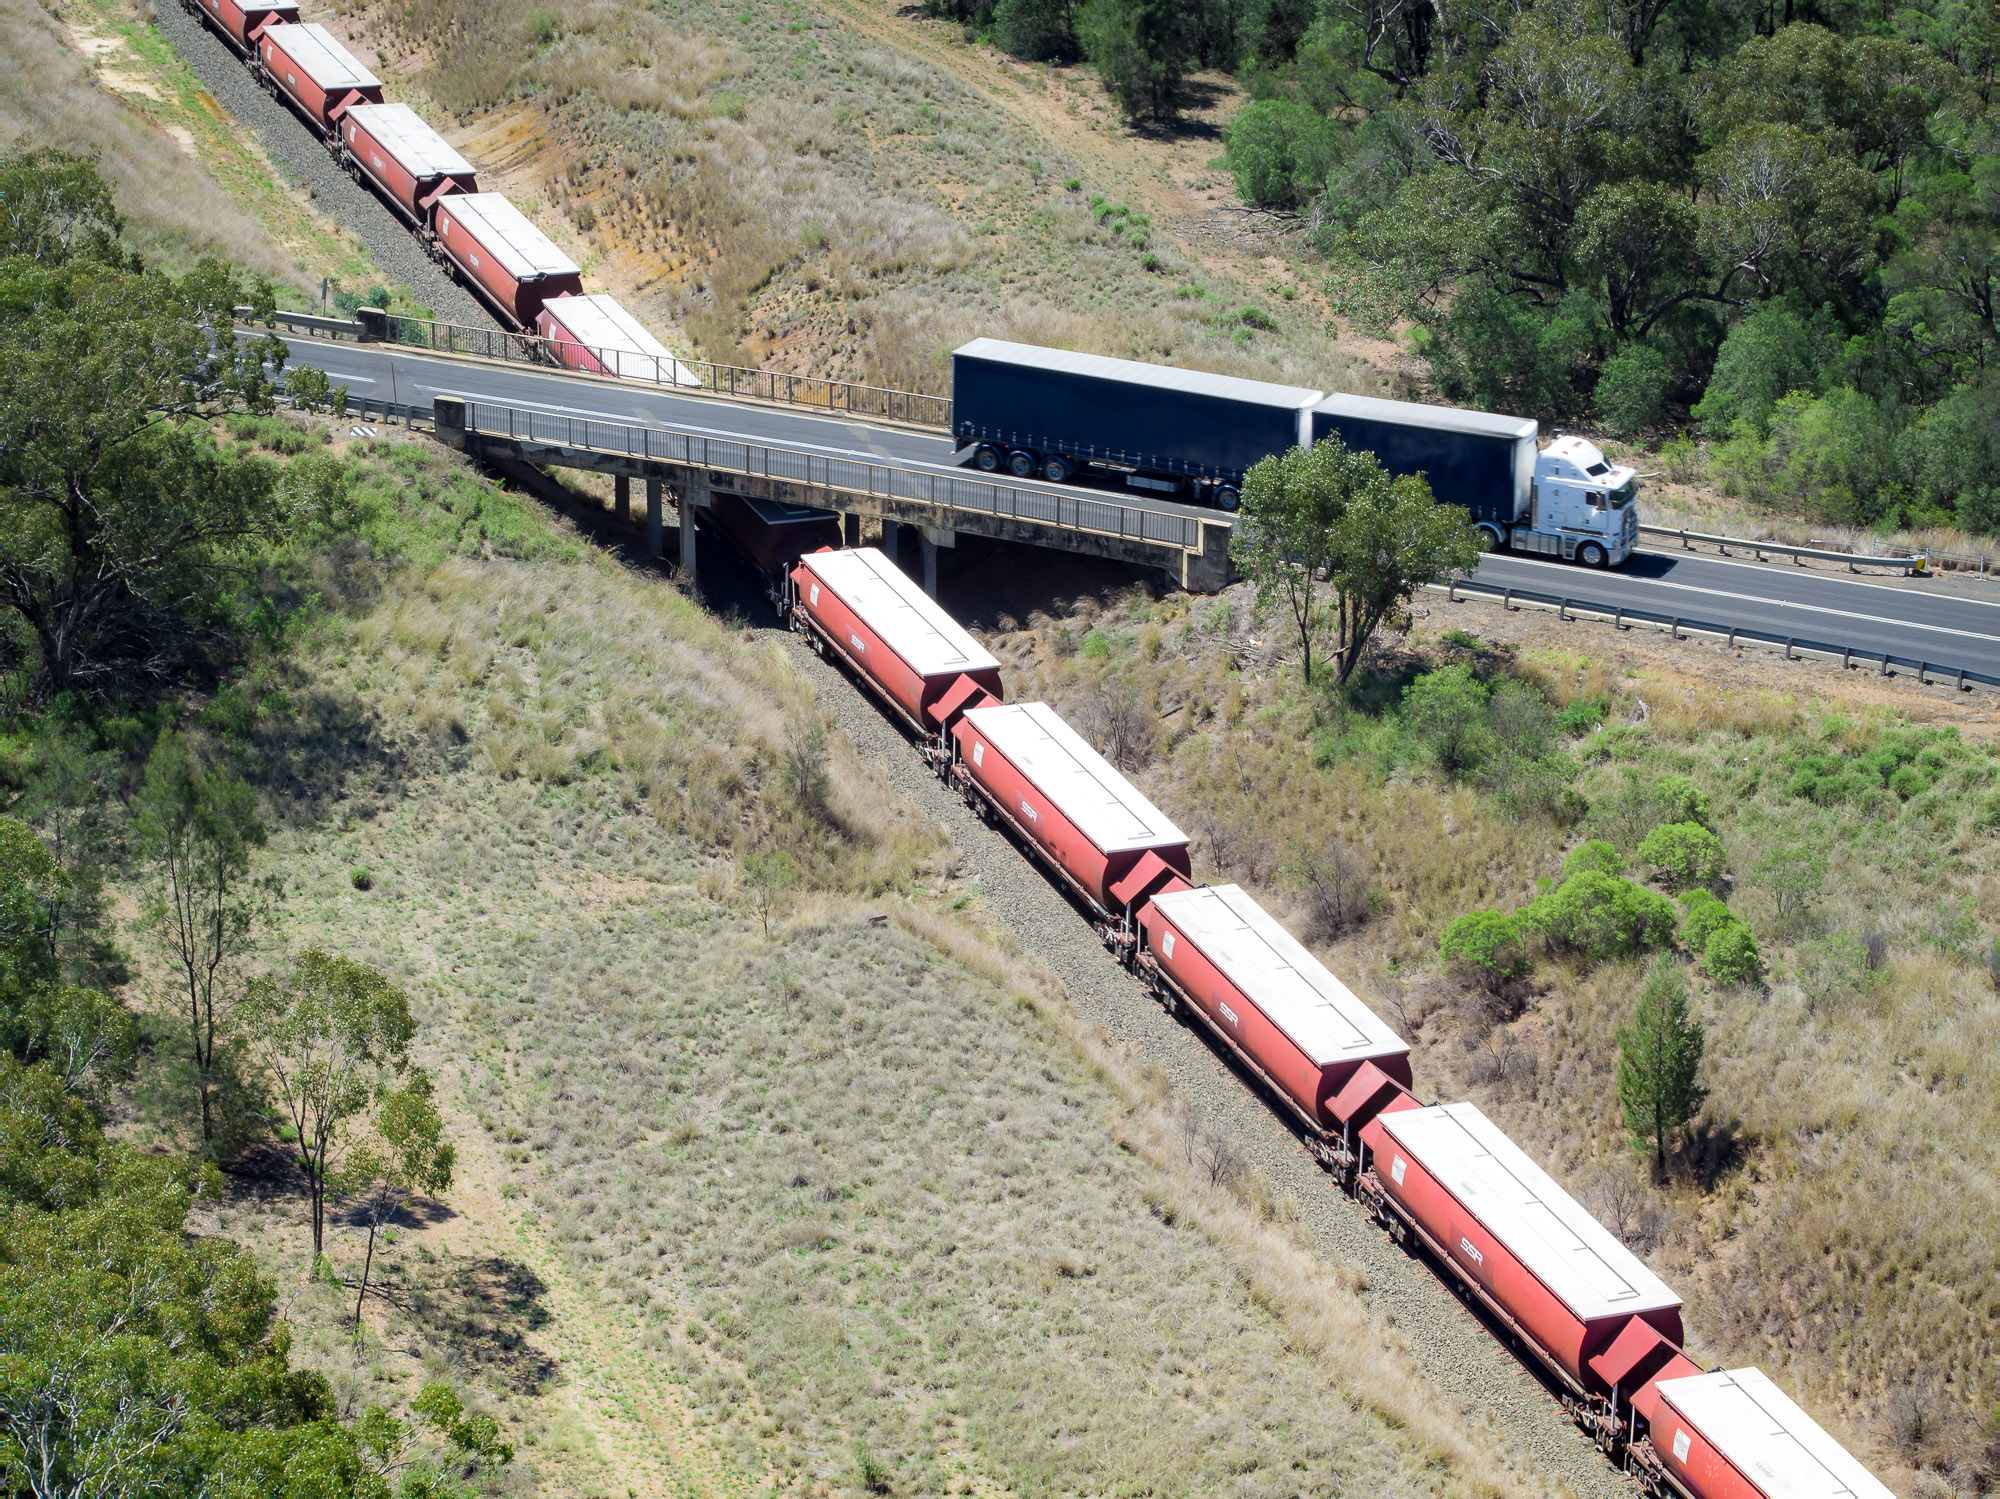 Picture of semi trailer travelling along a bridge with an image of freight train shown travelling on rail directly underneath the bridge.